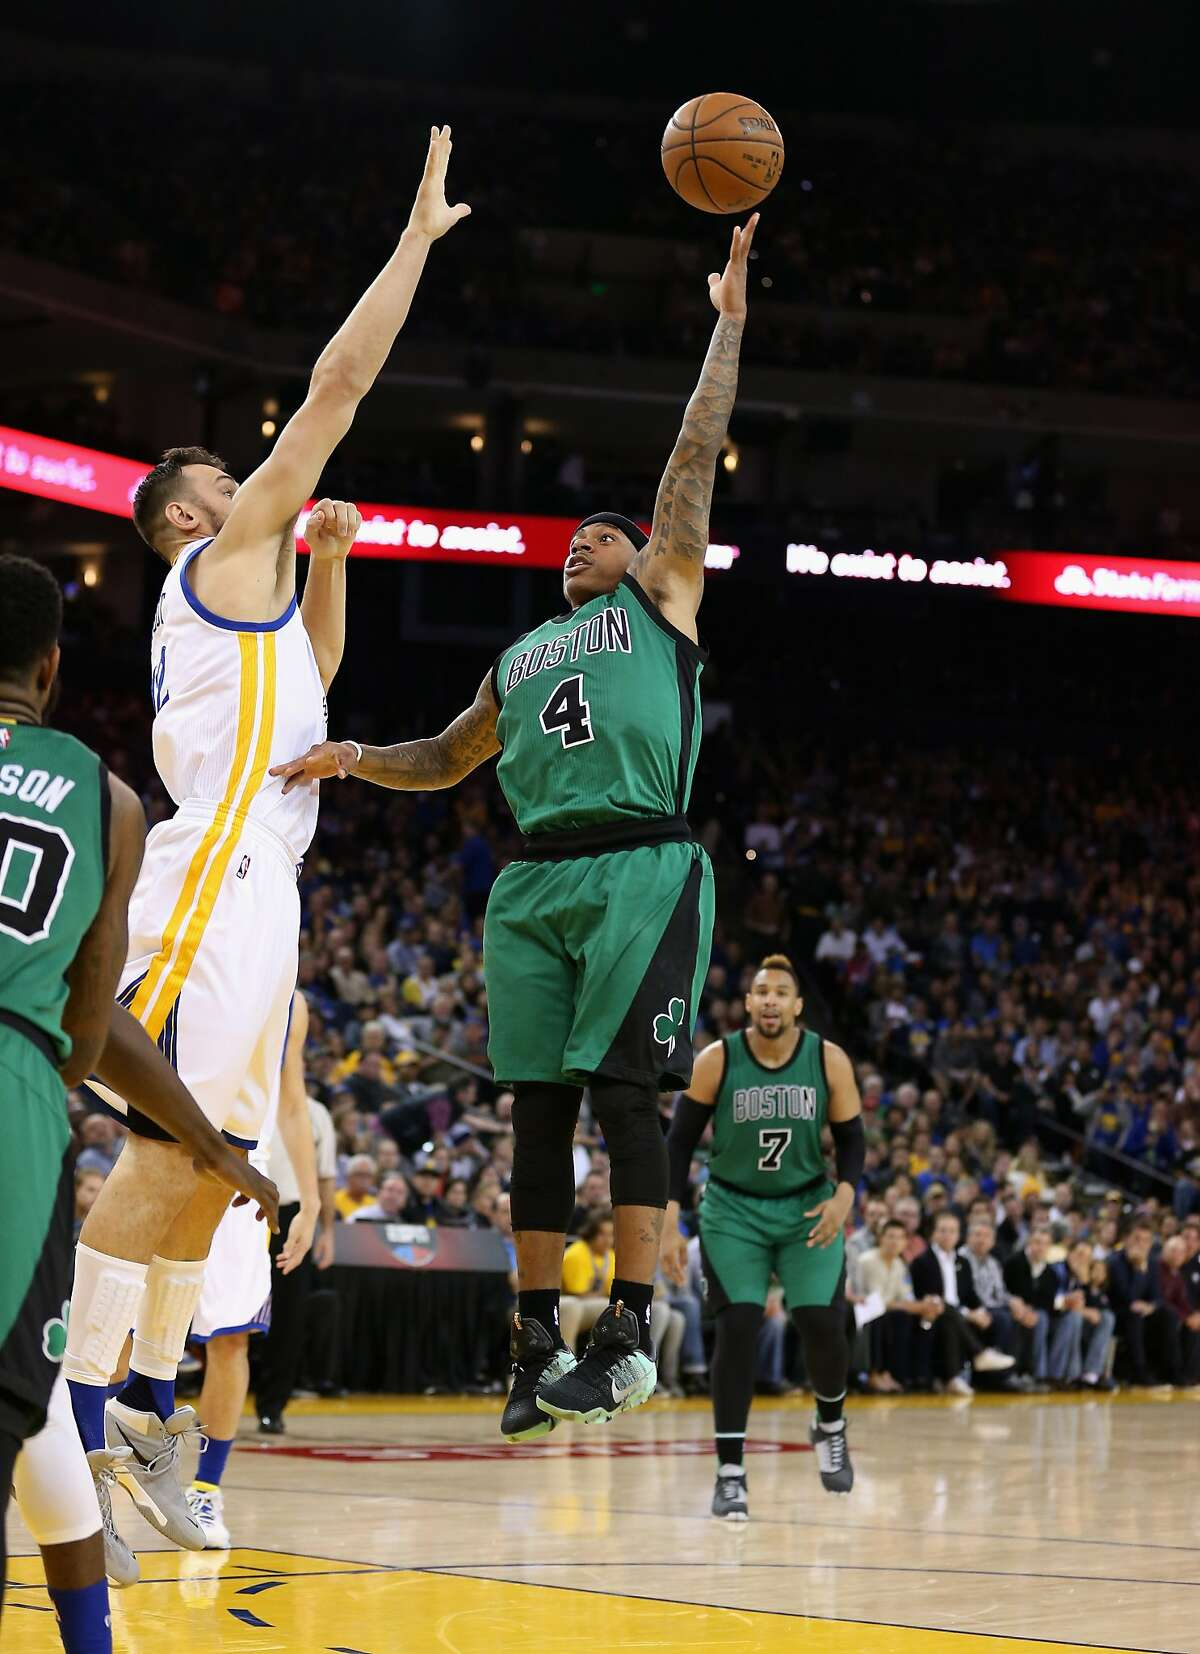 Isaiah Thomas #4 of the Boston Celtics shoots over Andrew Bogut at ORACLE Arena on April 1, 2016 in Oakland, California.